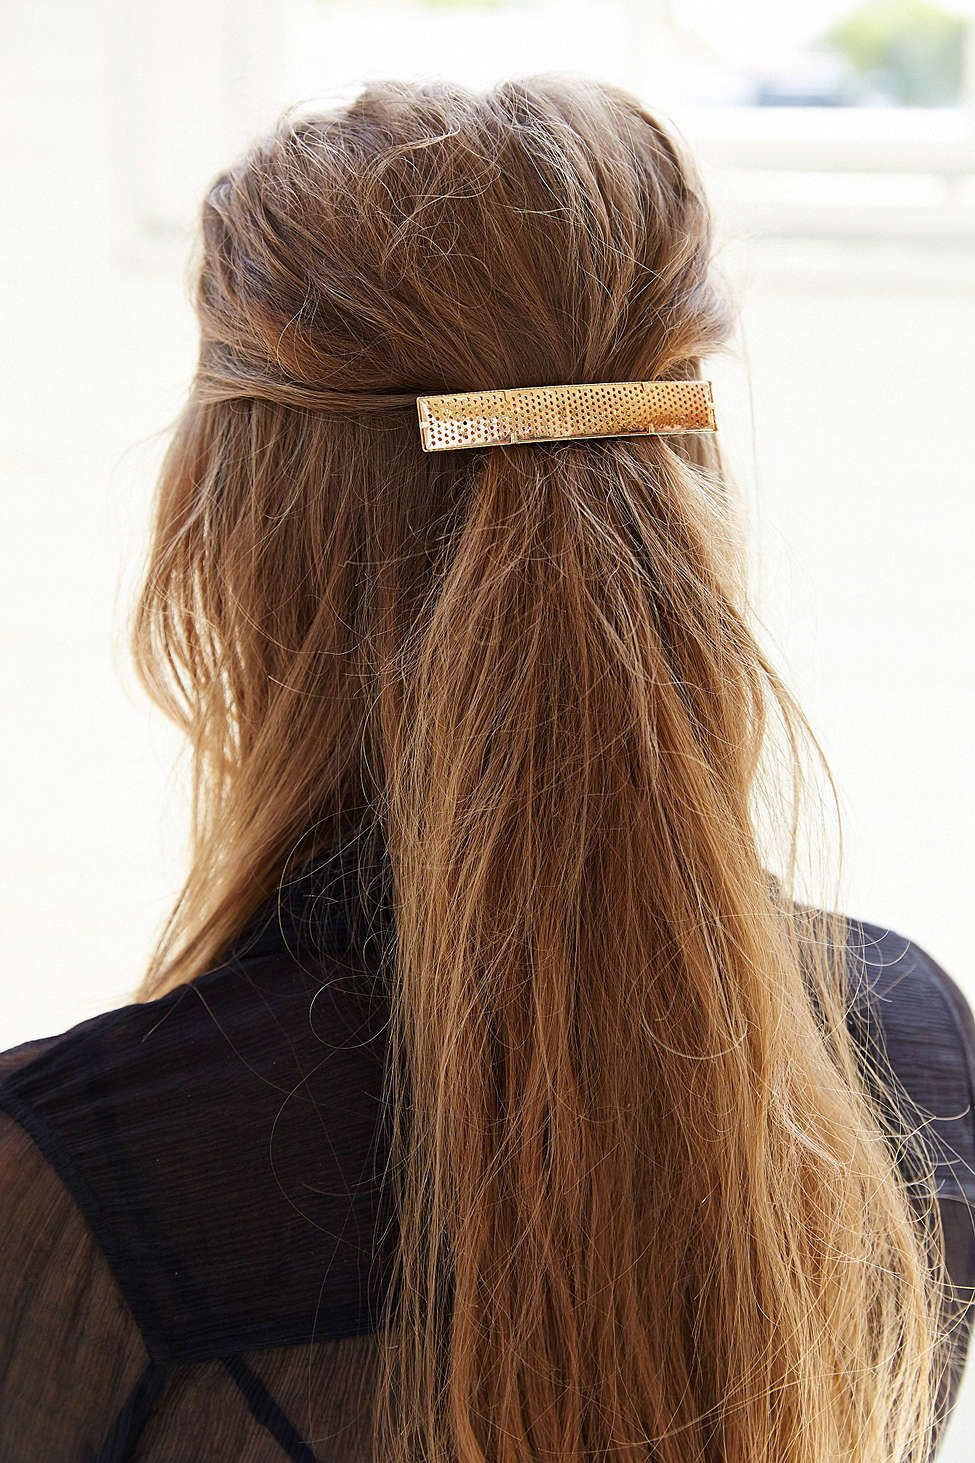 Perforated metal barrette is that for me pinterest barrette